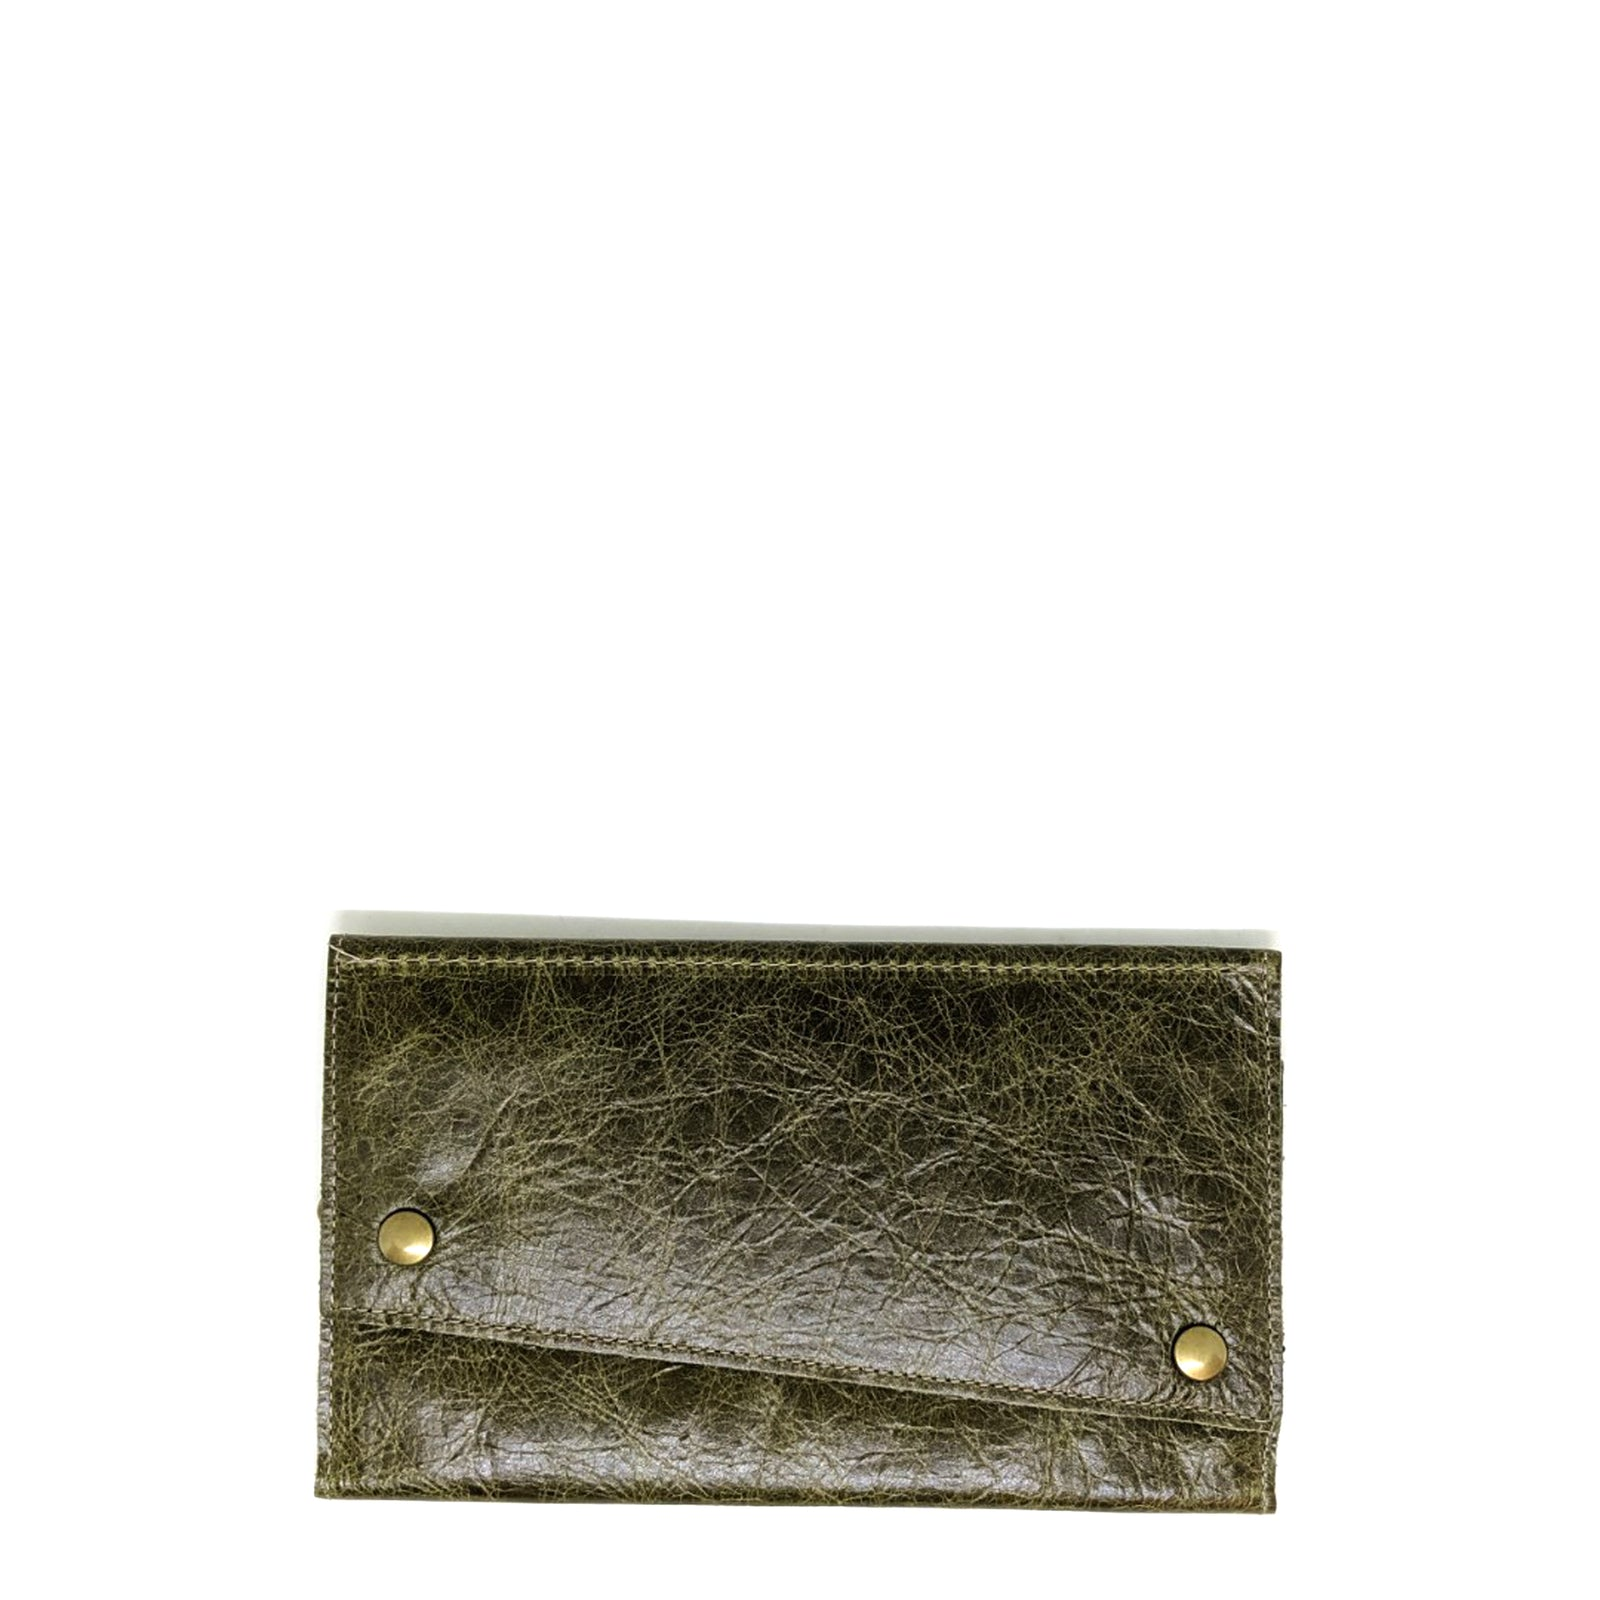 Kimerly Tri-fold Wallet - Happy Trails - Brynn Capella, Tri-fold Wallet